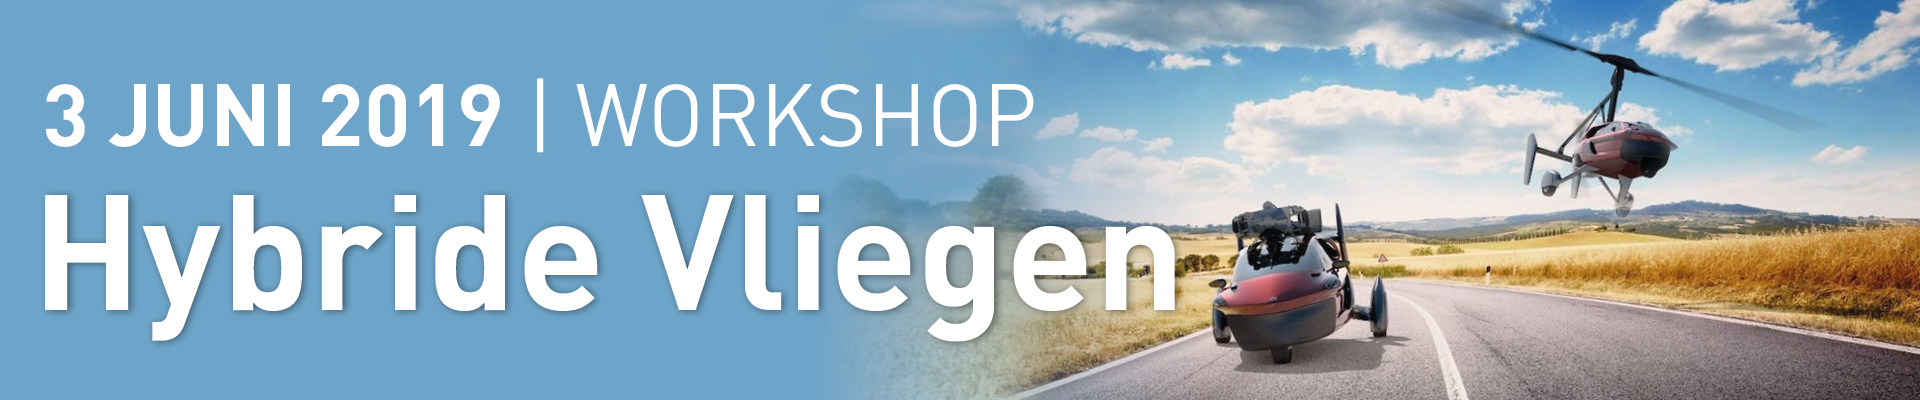 Workshop hybride vliegen